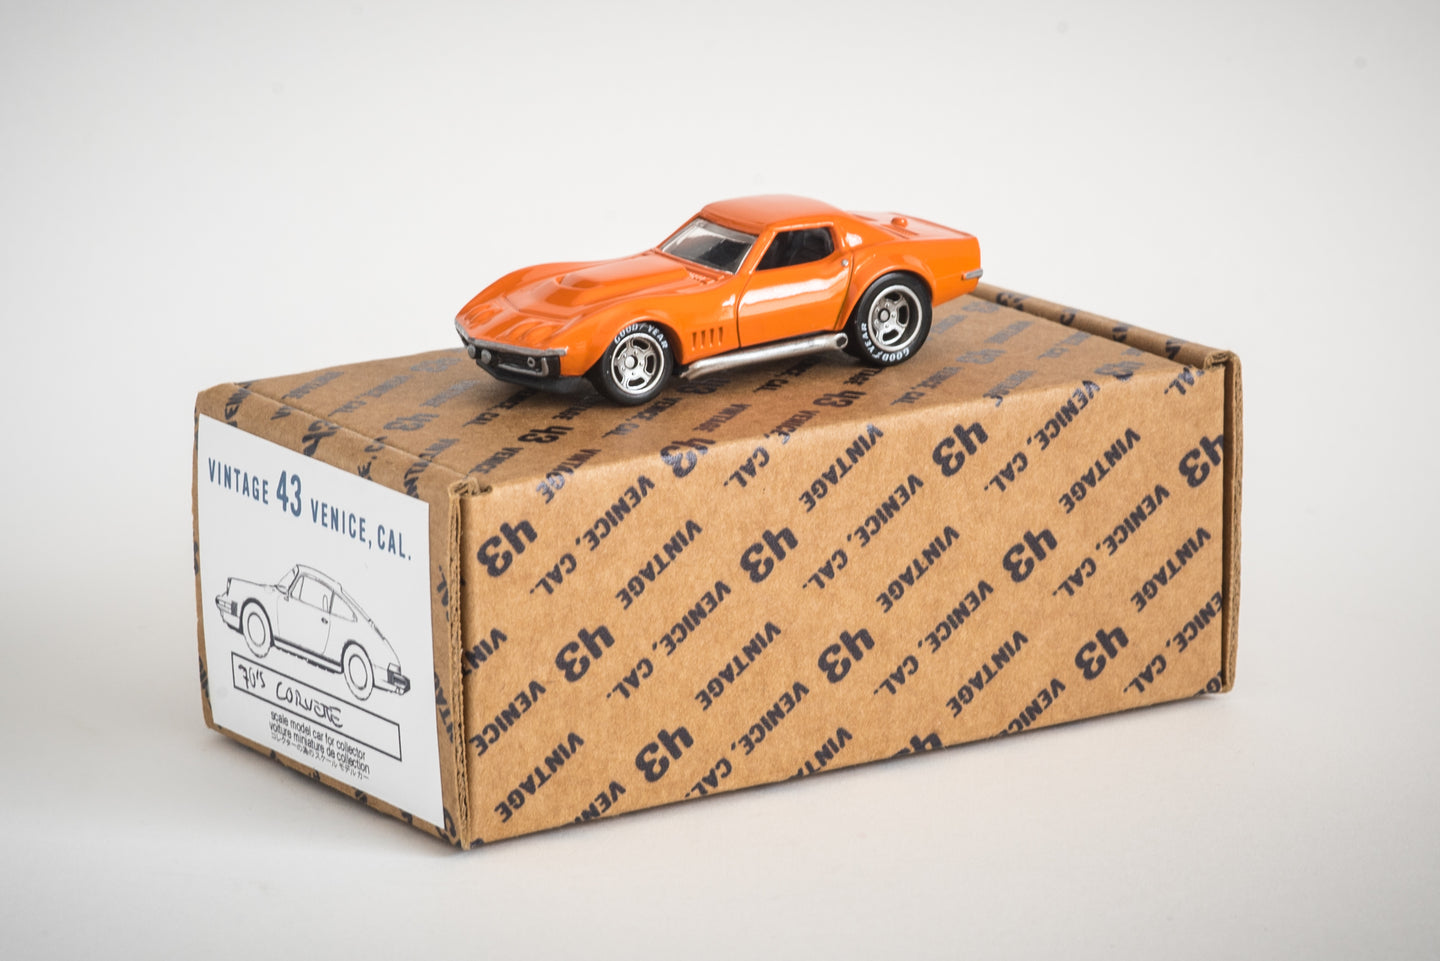 Vintage 43 Custom 1/64 Scale 1970's Orange Corvette